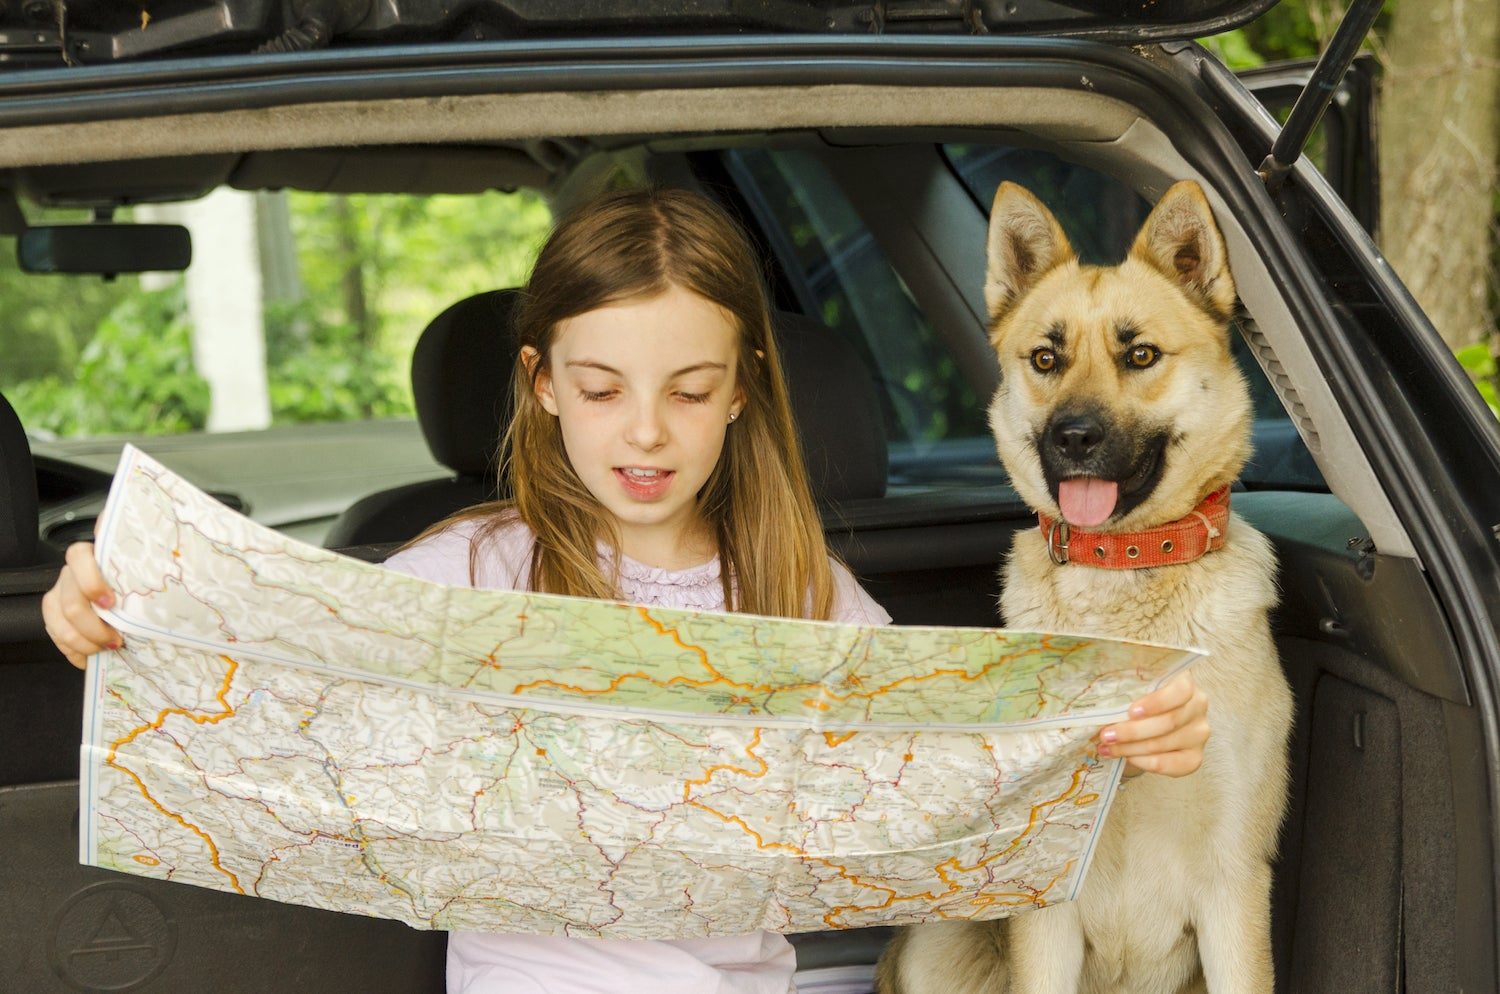 young girl reads map in car with dog on leave no trace trip